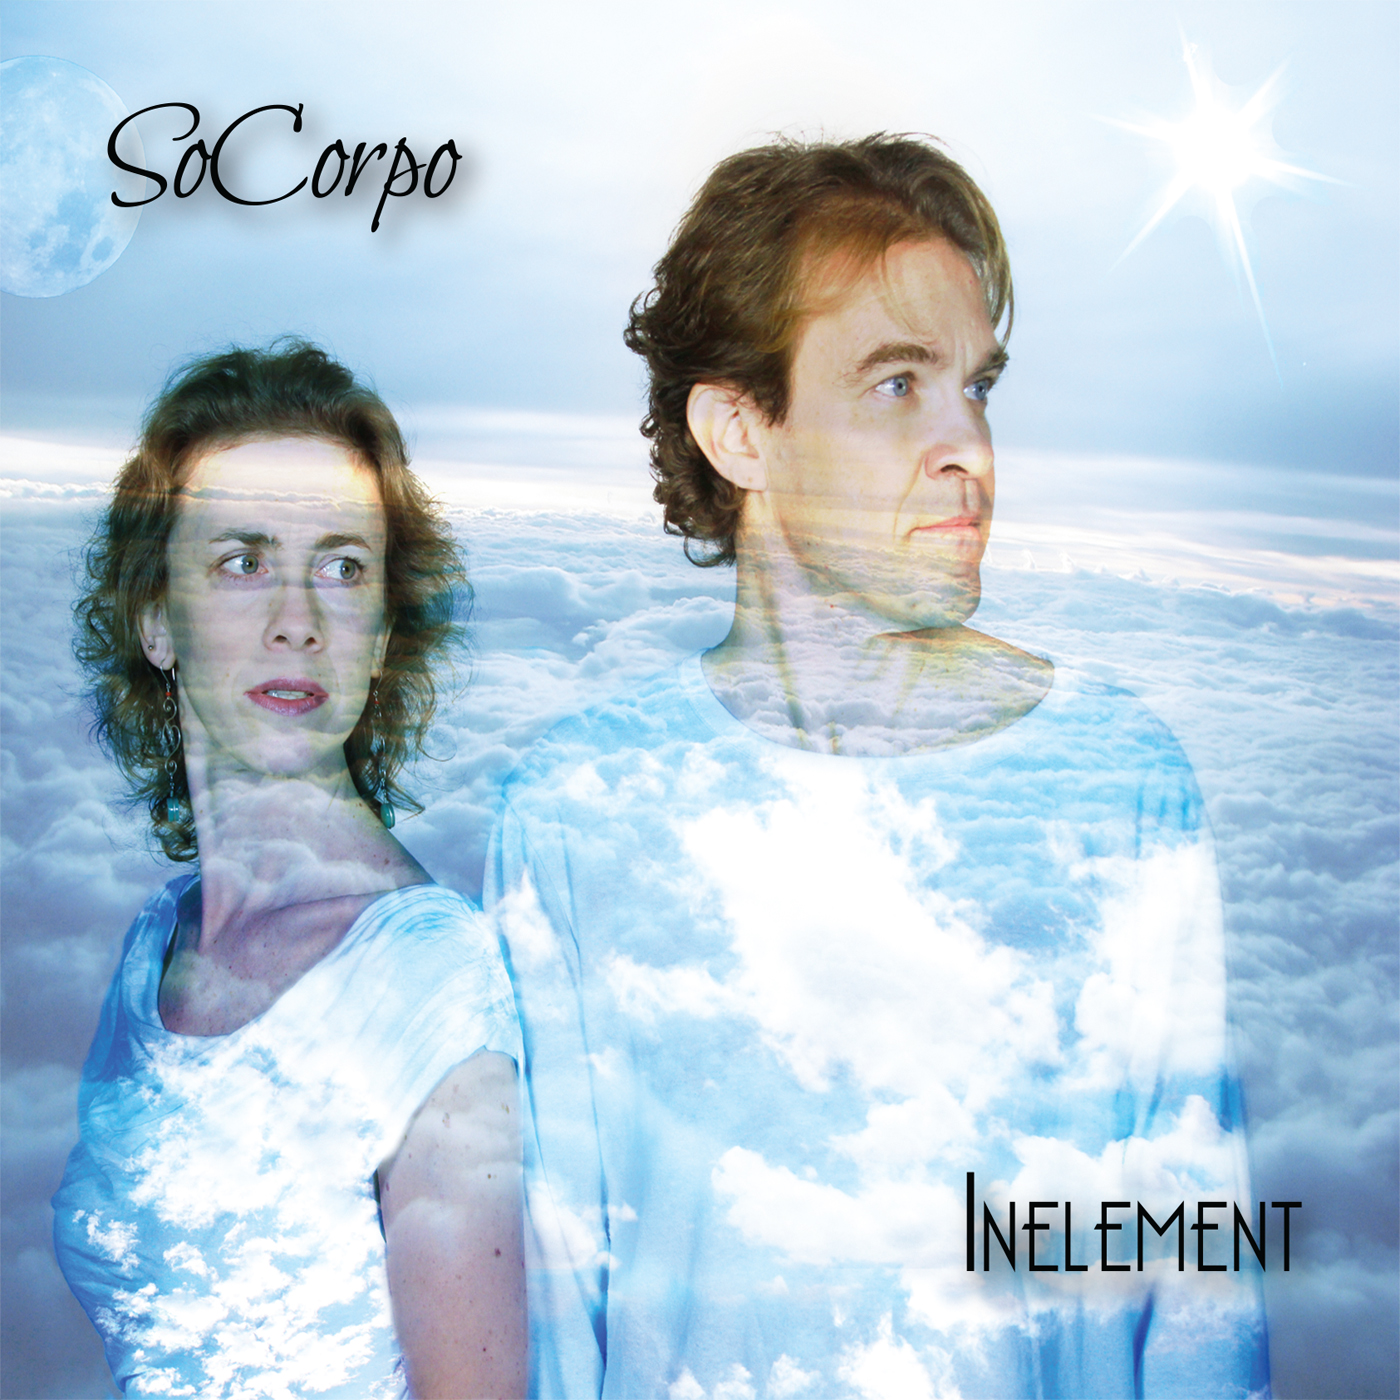 Inelement Cover Art.jpg